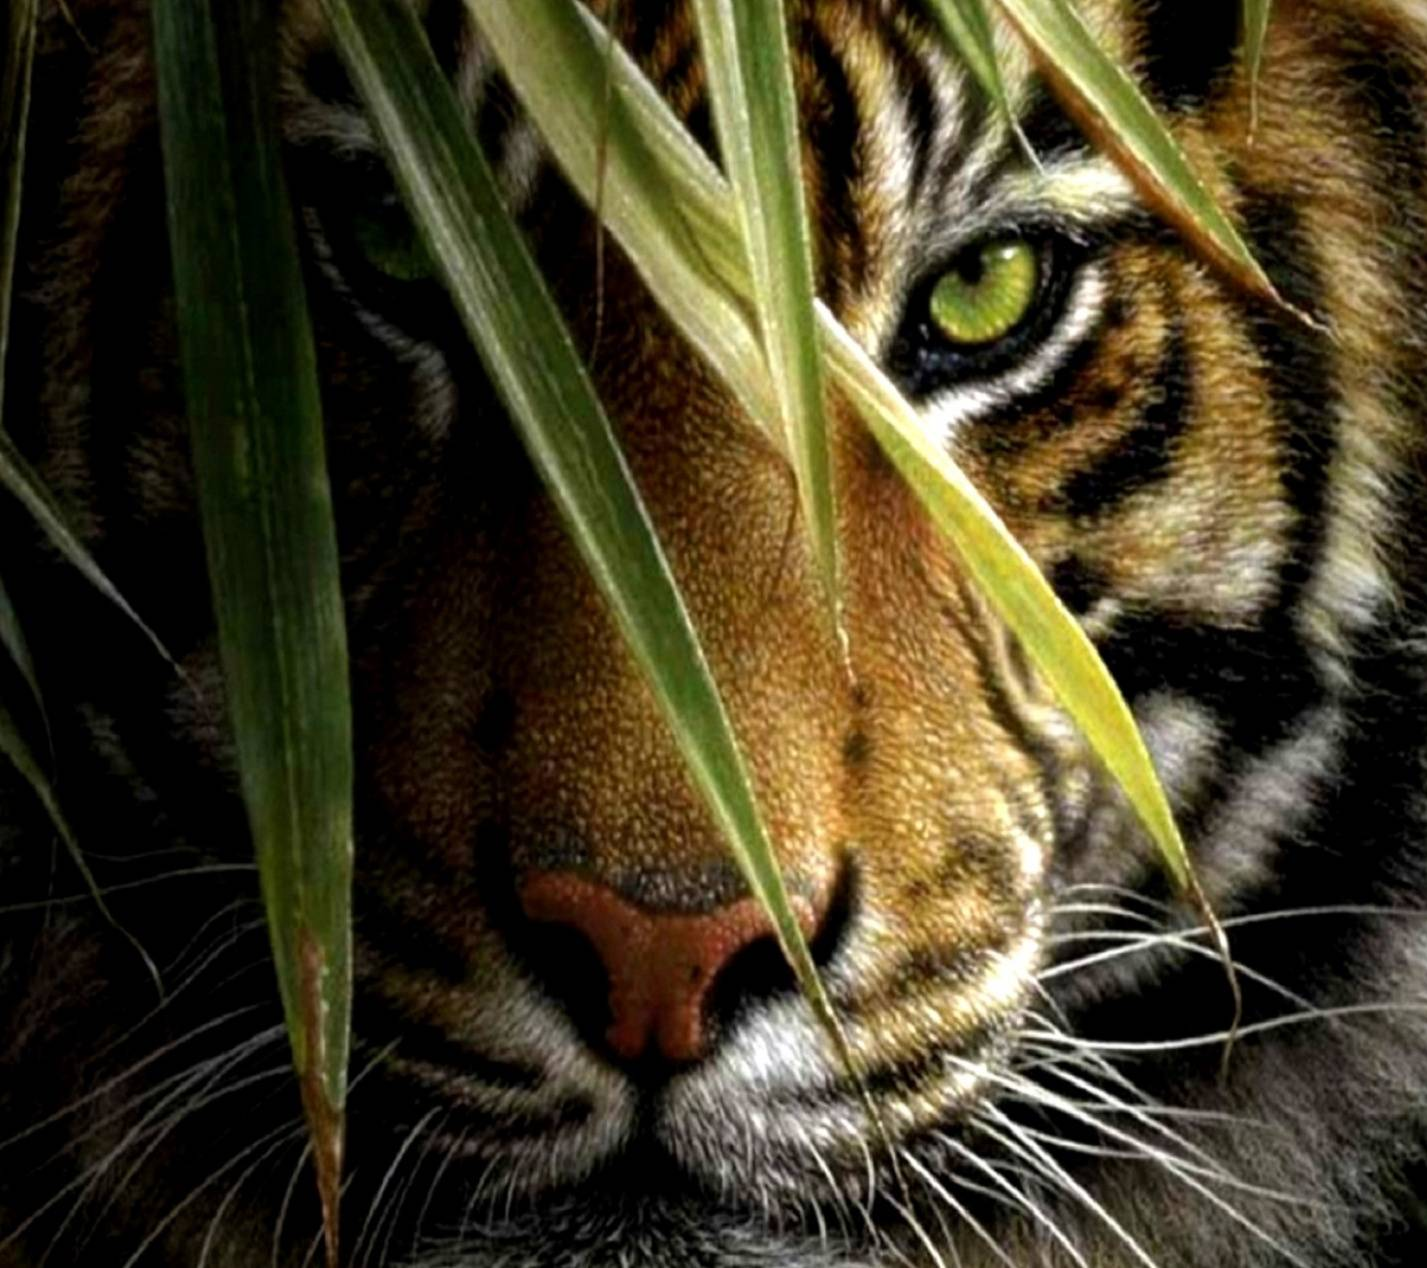 Angry Tiger Wallpaper By Twisterlk 18 Free On Zedge